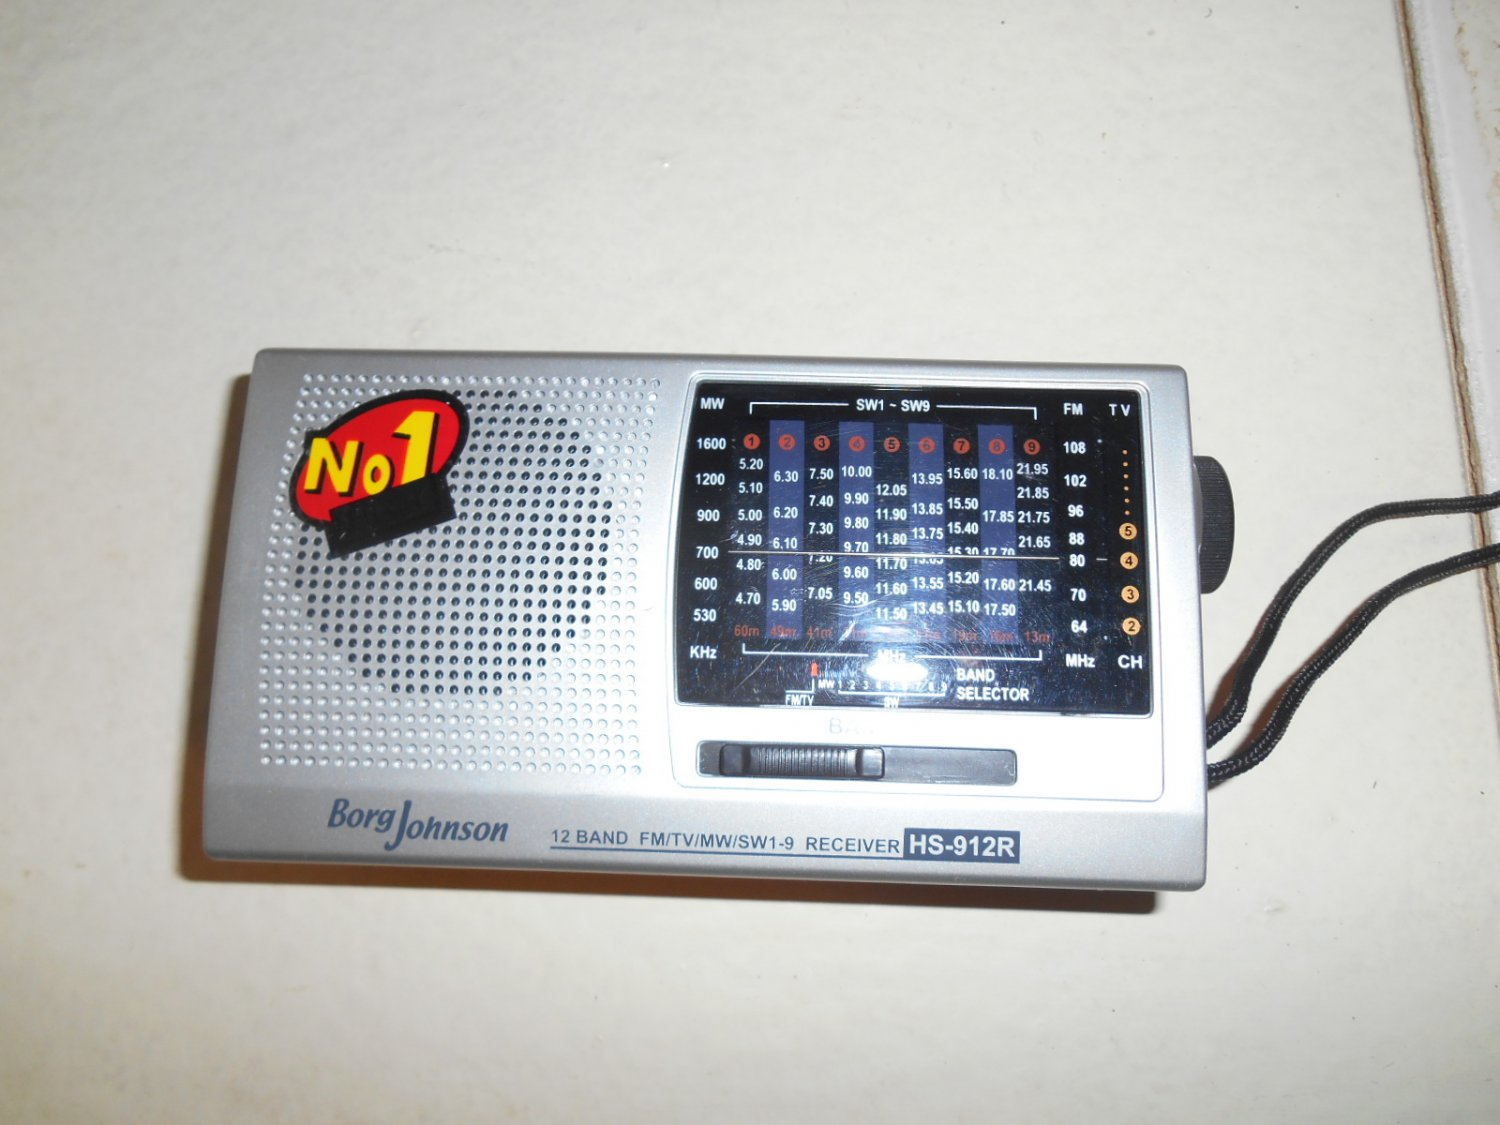 Borg Johnson 12 band FM/TV/MW/SW shortwave receiver HS-912R